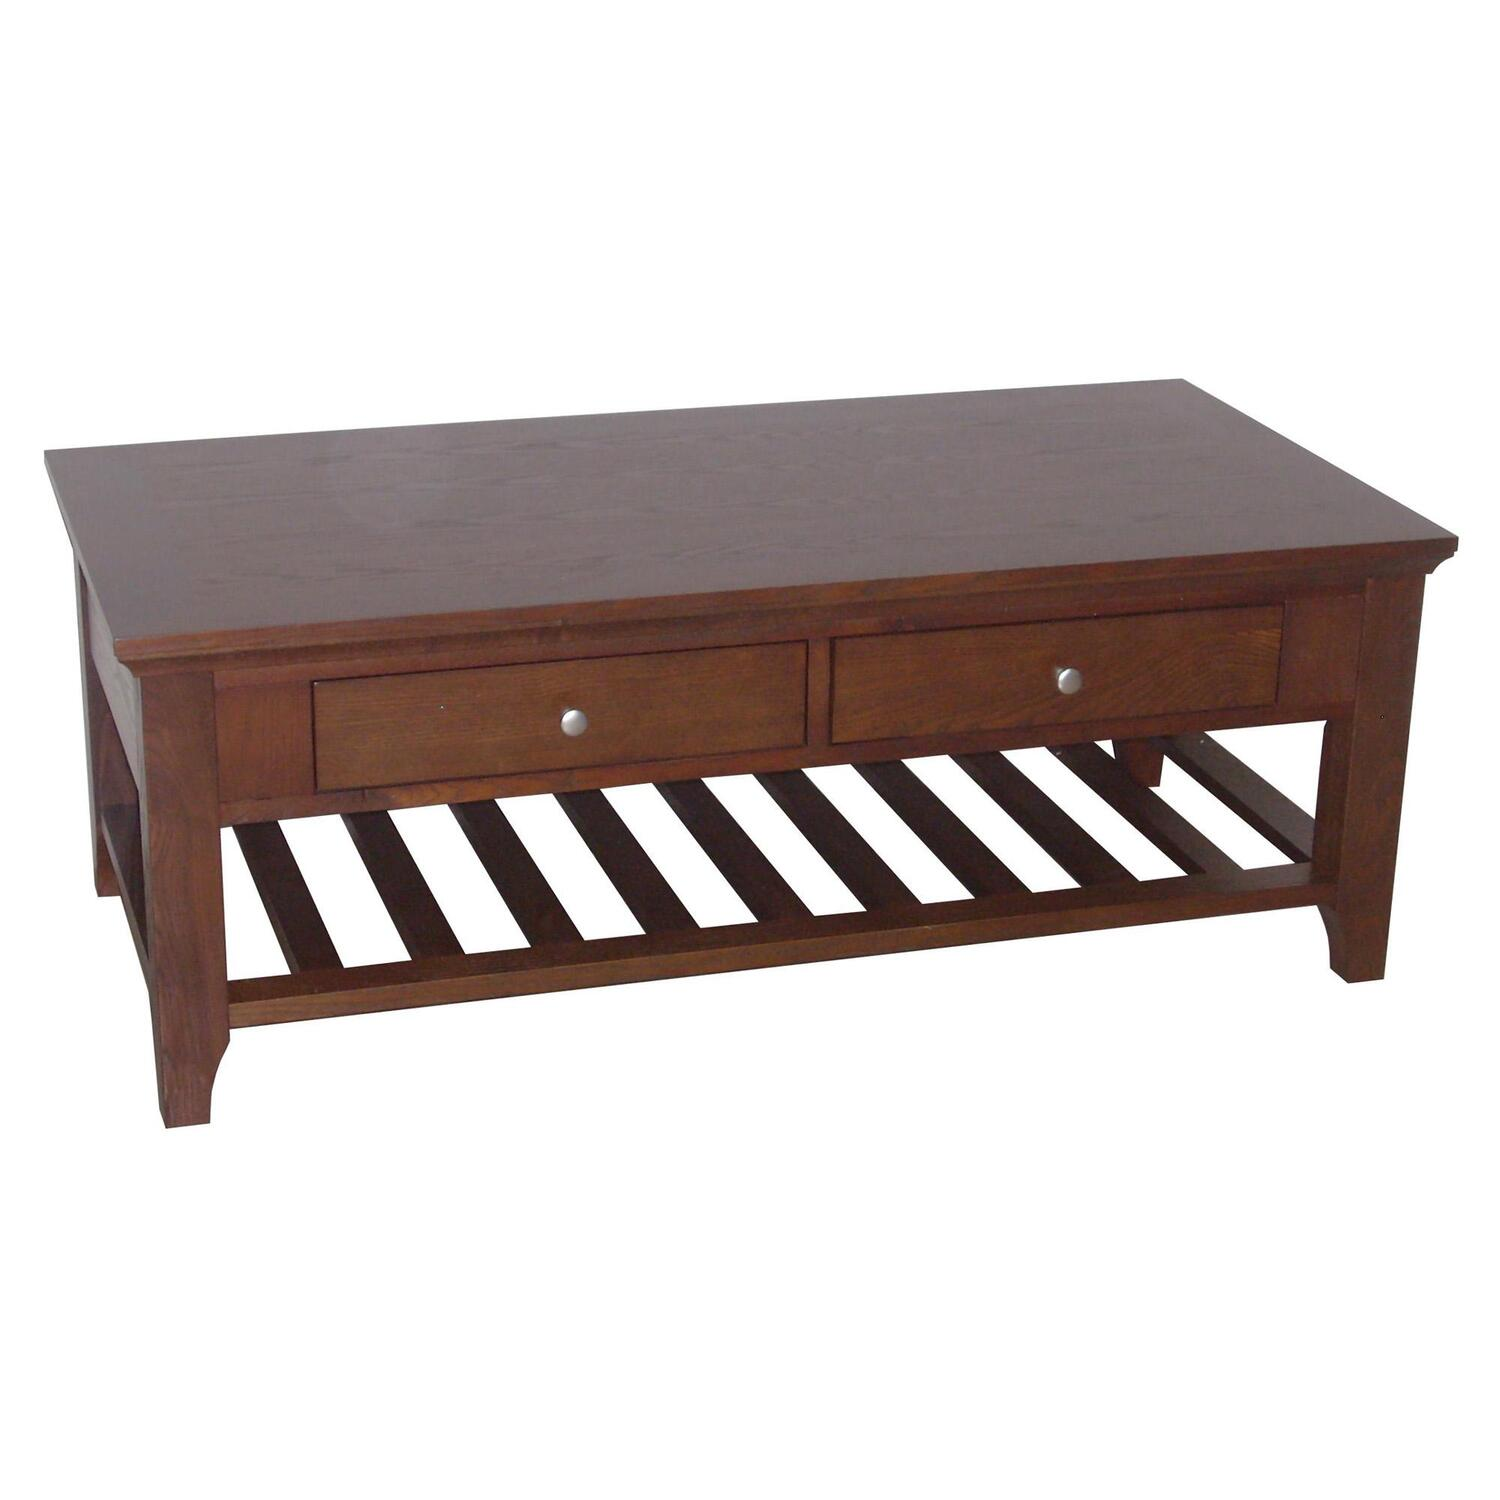 Ore International Fraser Coffee Table 2 Drawers By Oj Commerce R9111